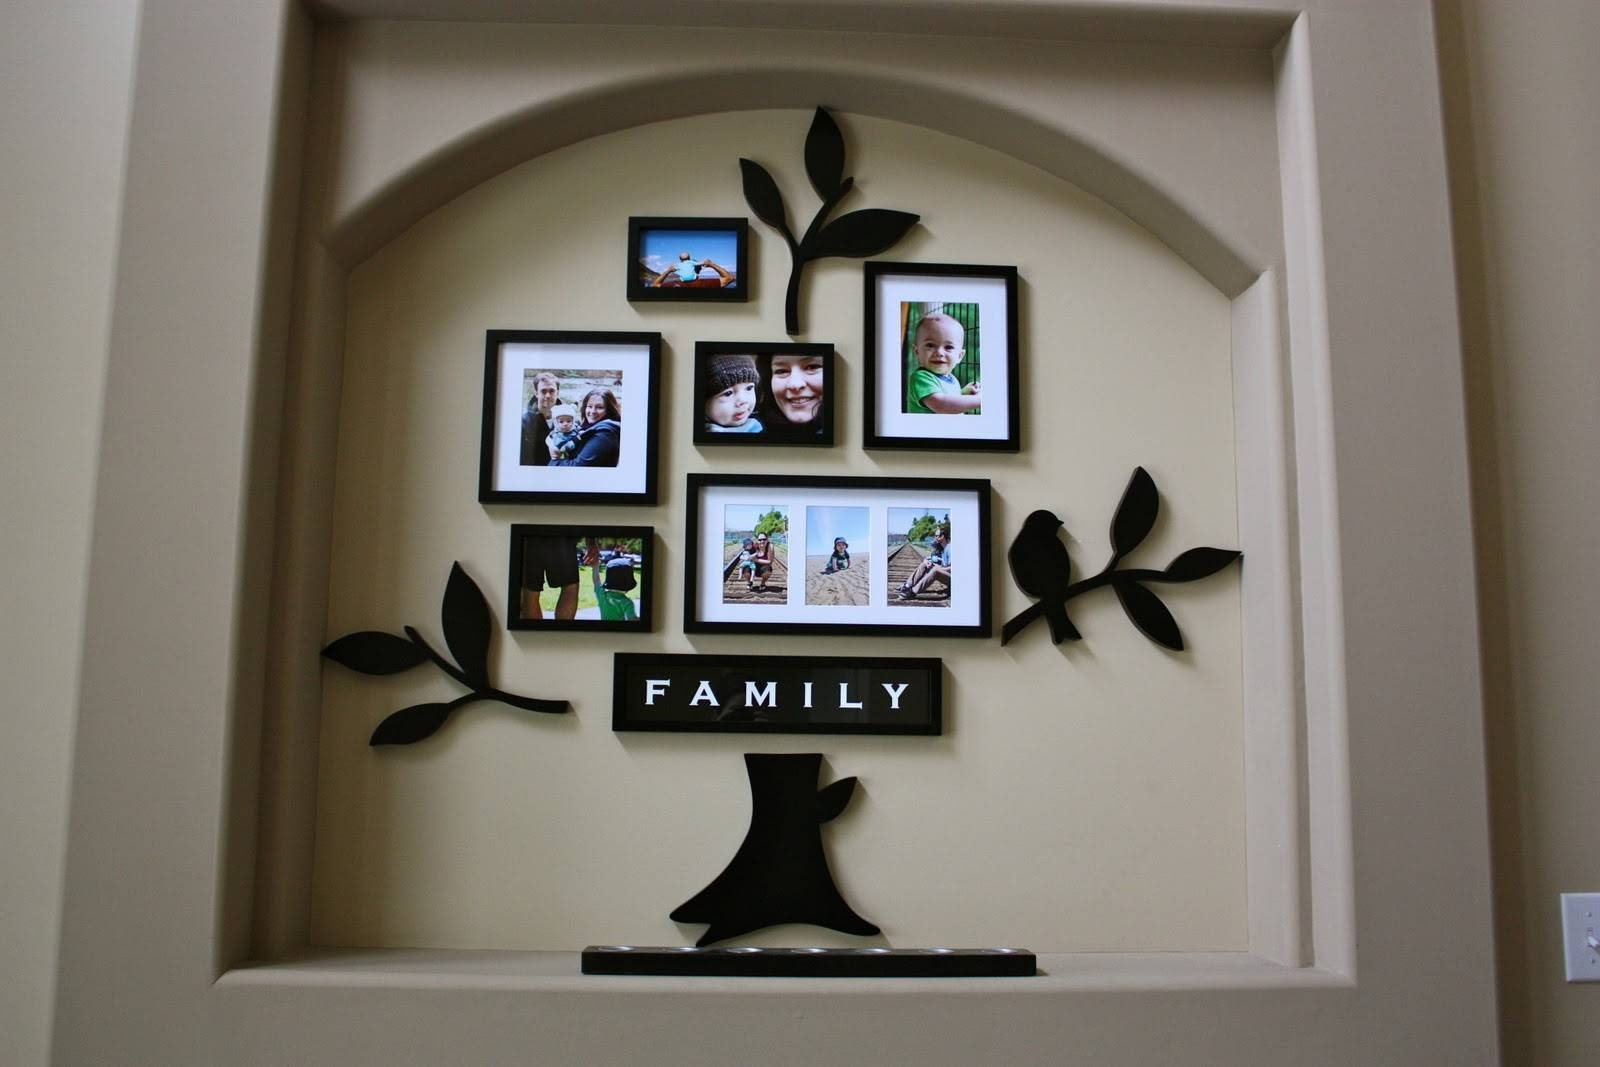 Family Tree Wall Art Bed Bath And Beyond | Wallartideas Within Most Up To Date Bed Bath And Beyond 3d Wall Art (View 2 of 20)